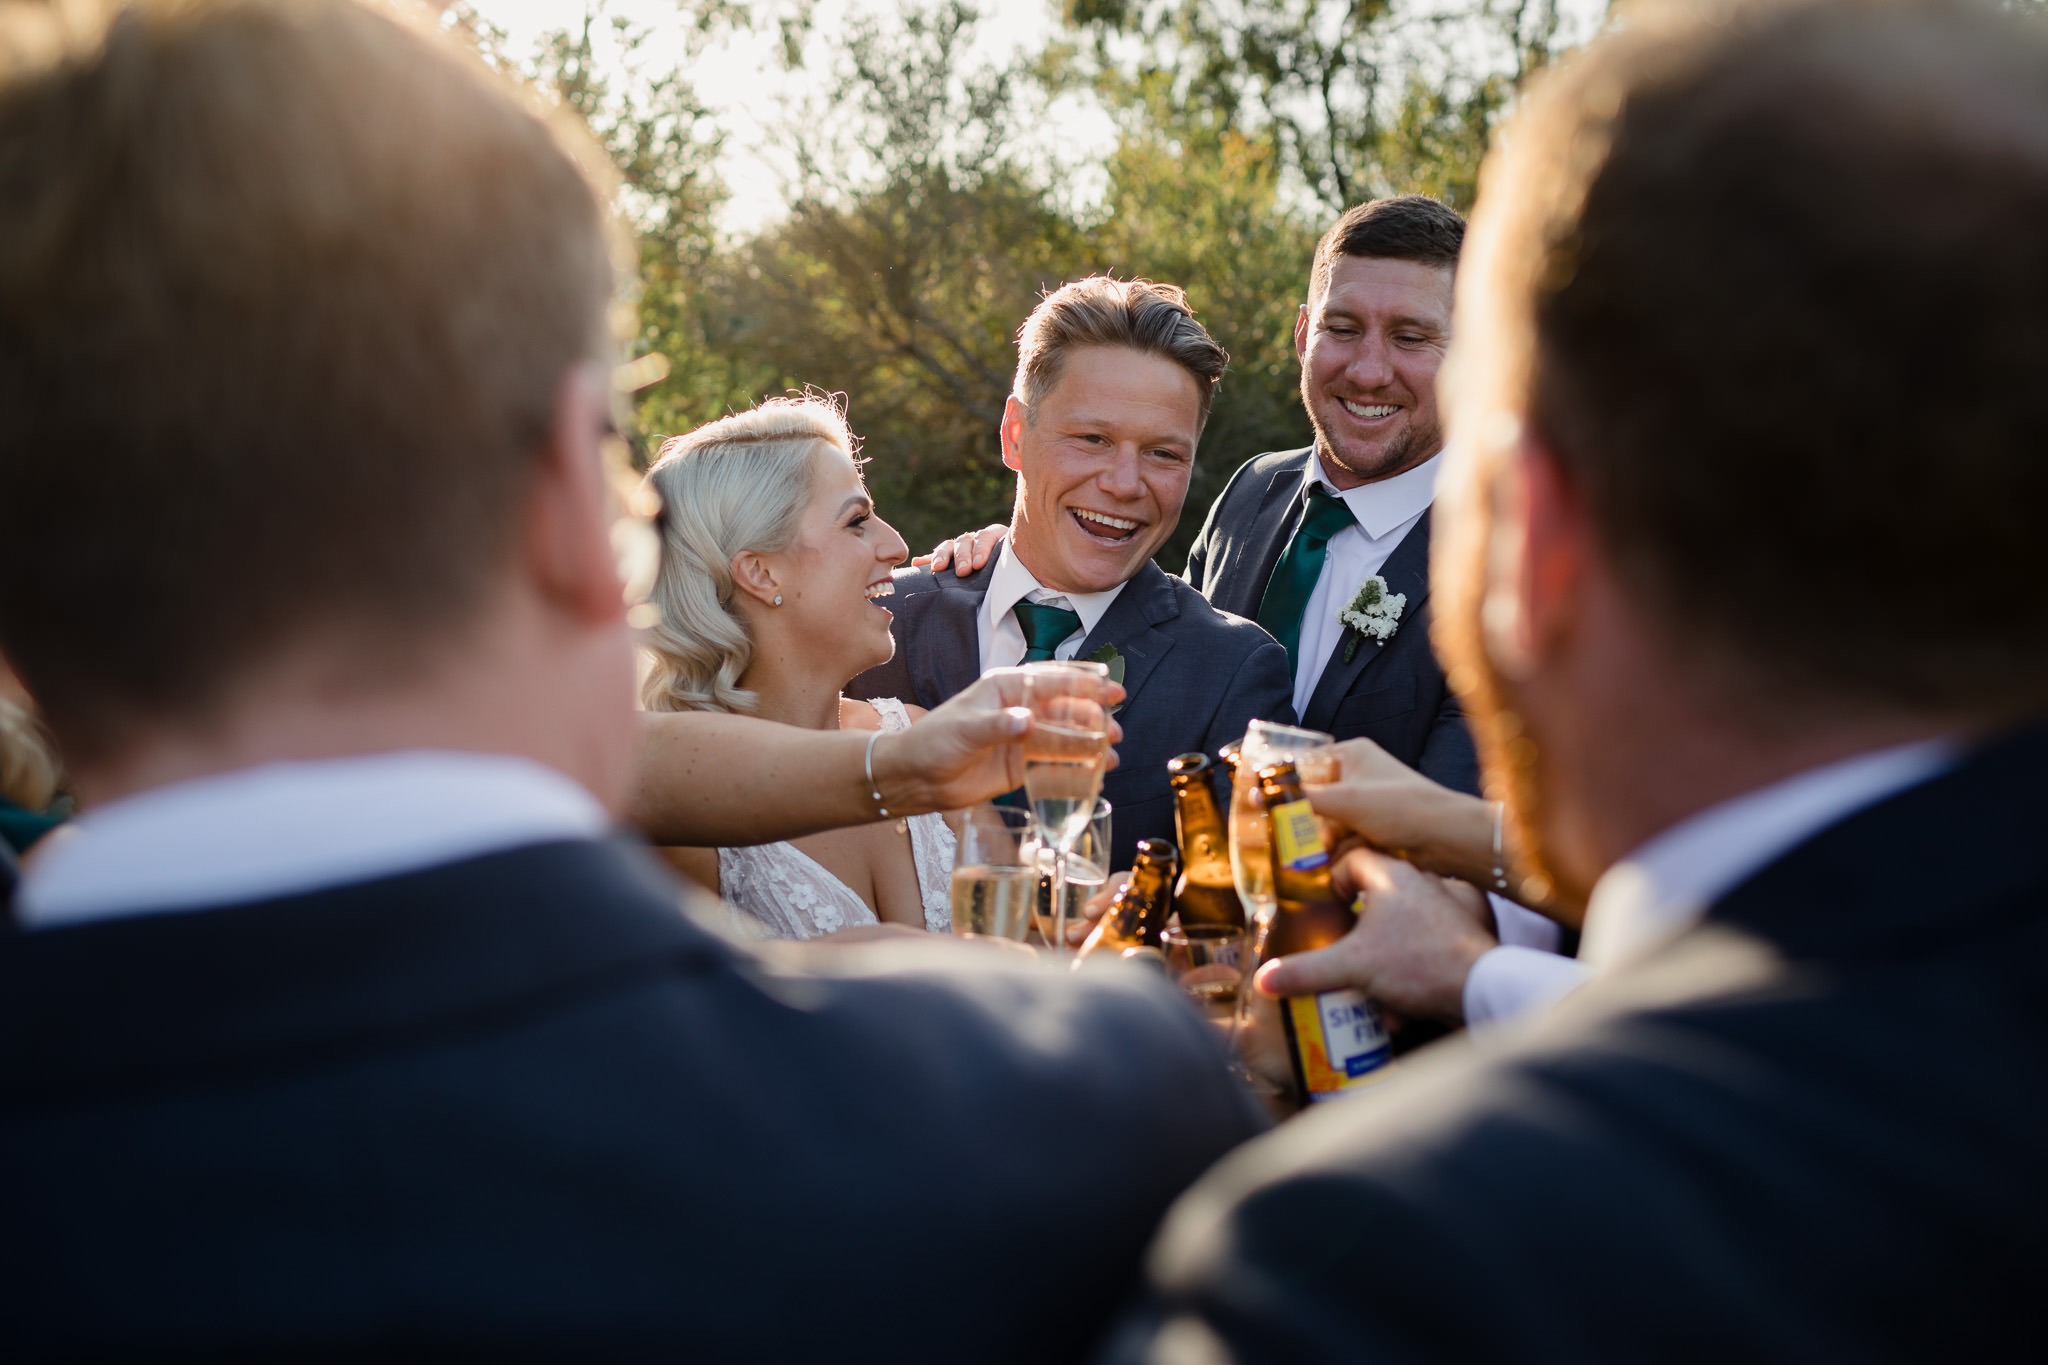 bride and groom clinking beer bottles and champagne glasses with friends